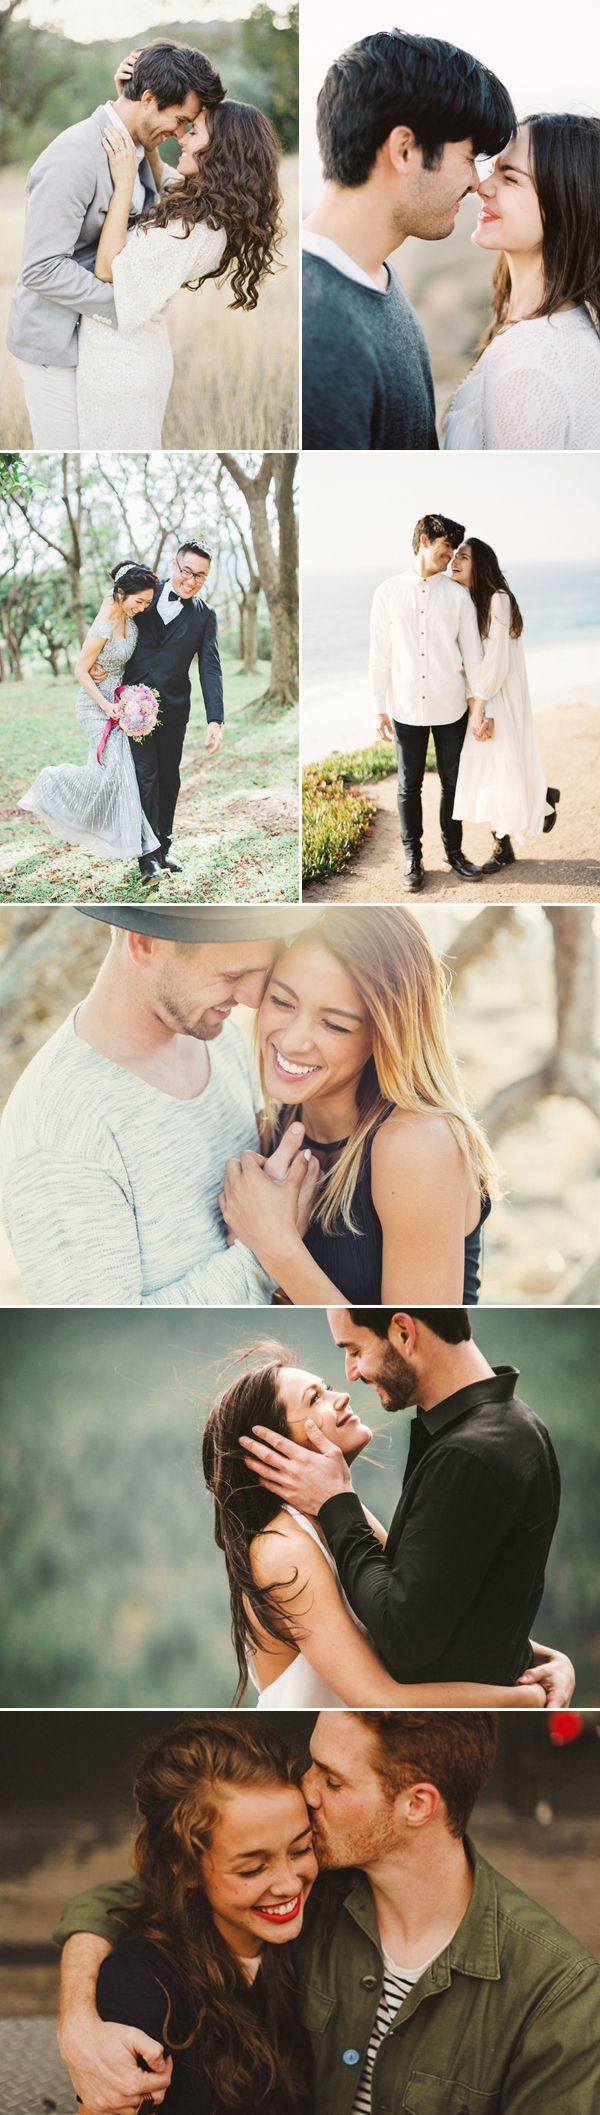 Romantic engagement photograph ideas for your outdoor engagement session